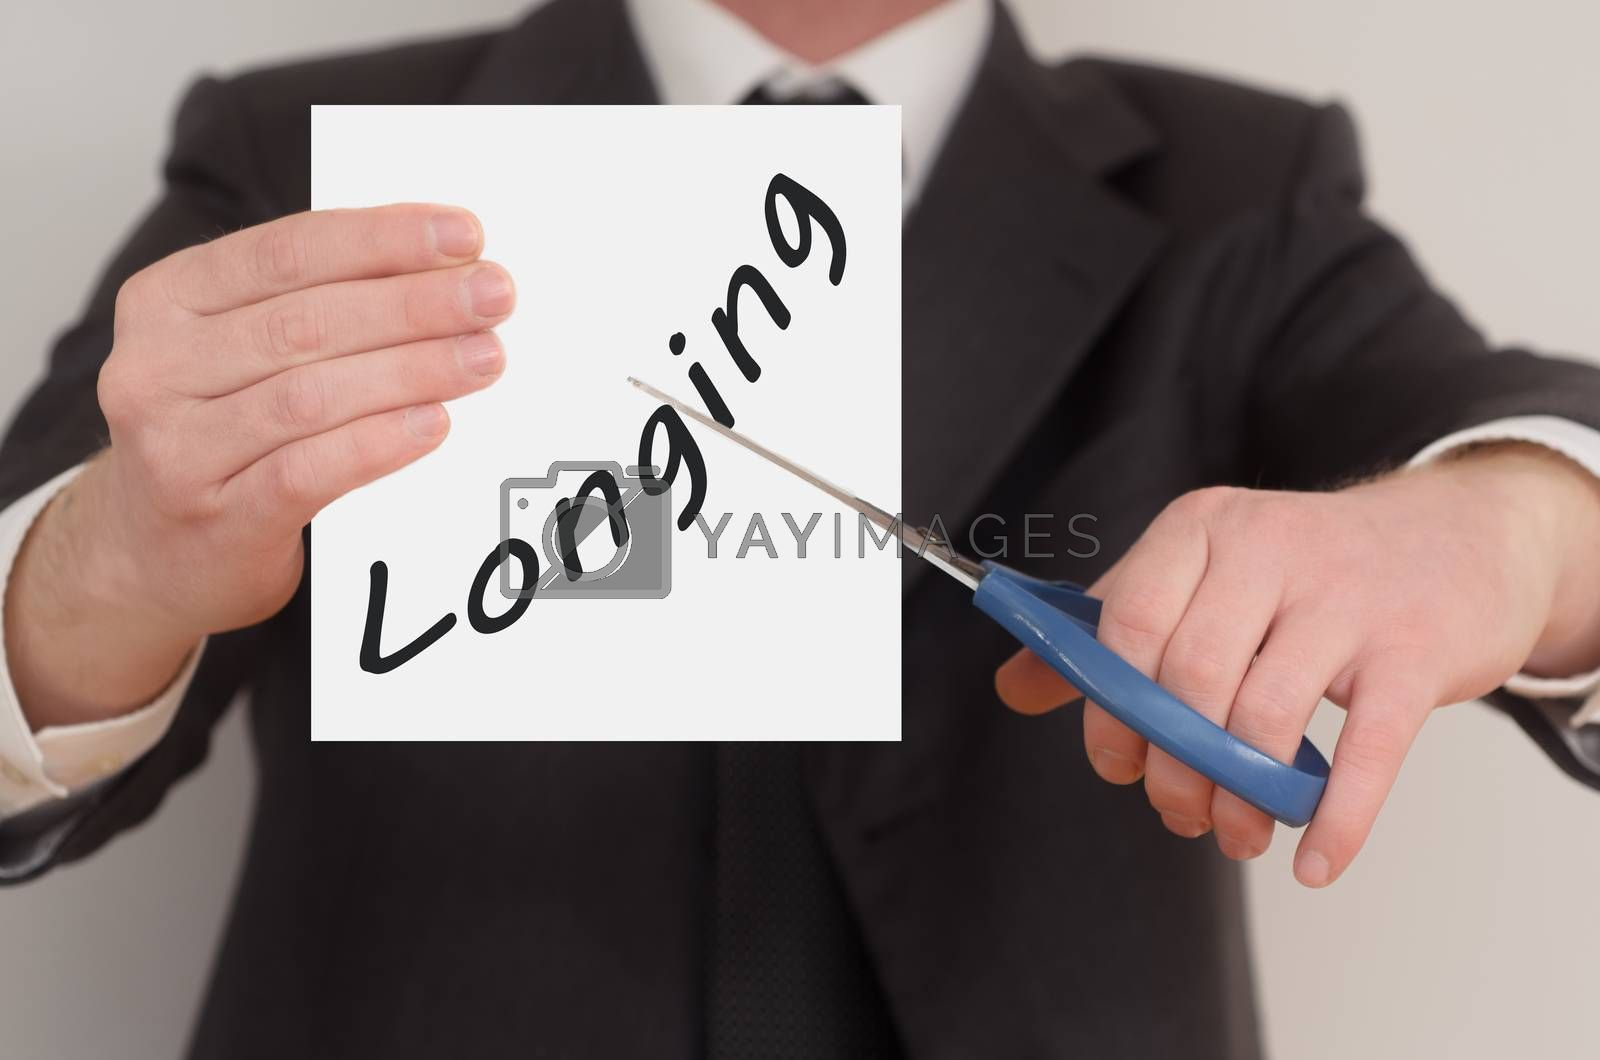 Longing, man in suit cutting text on paper with scissors